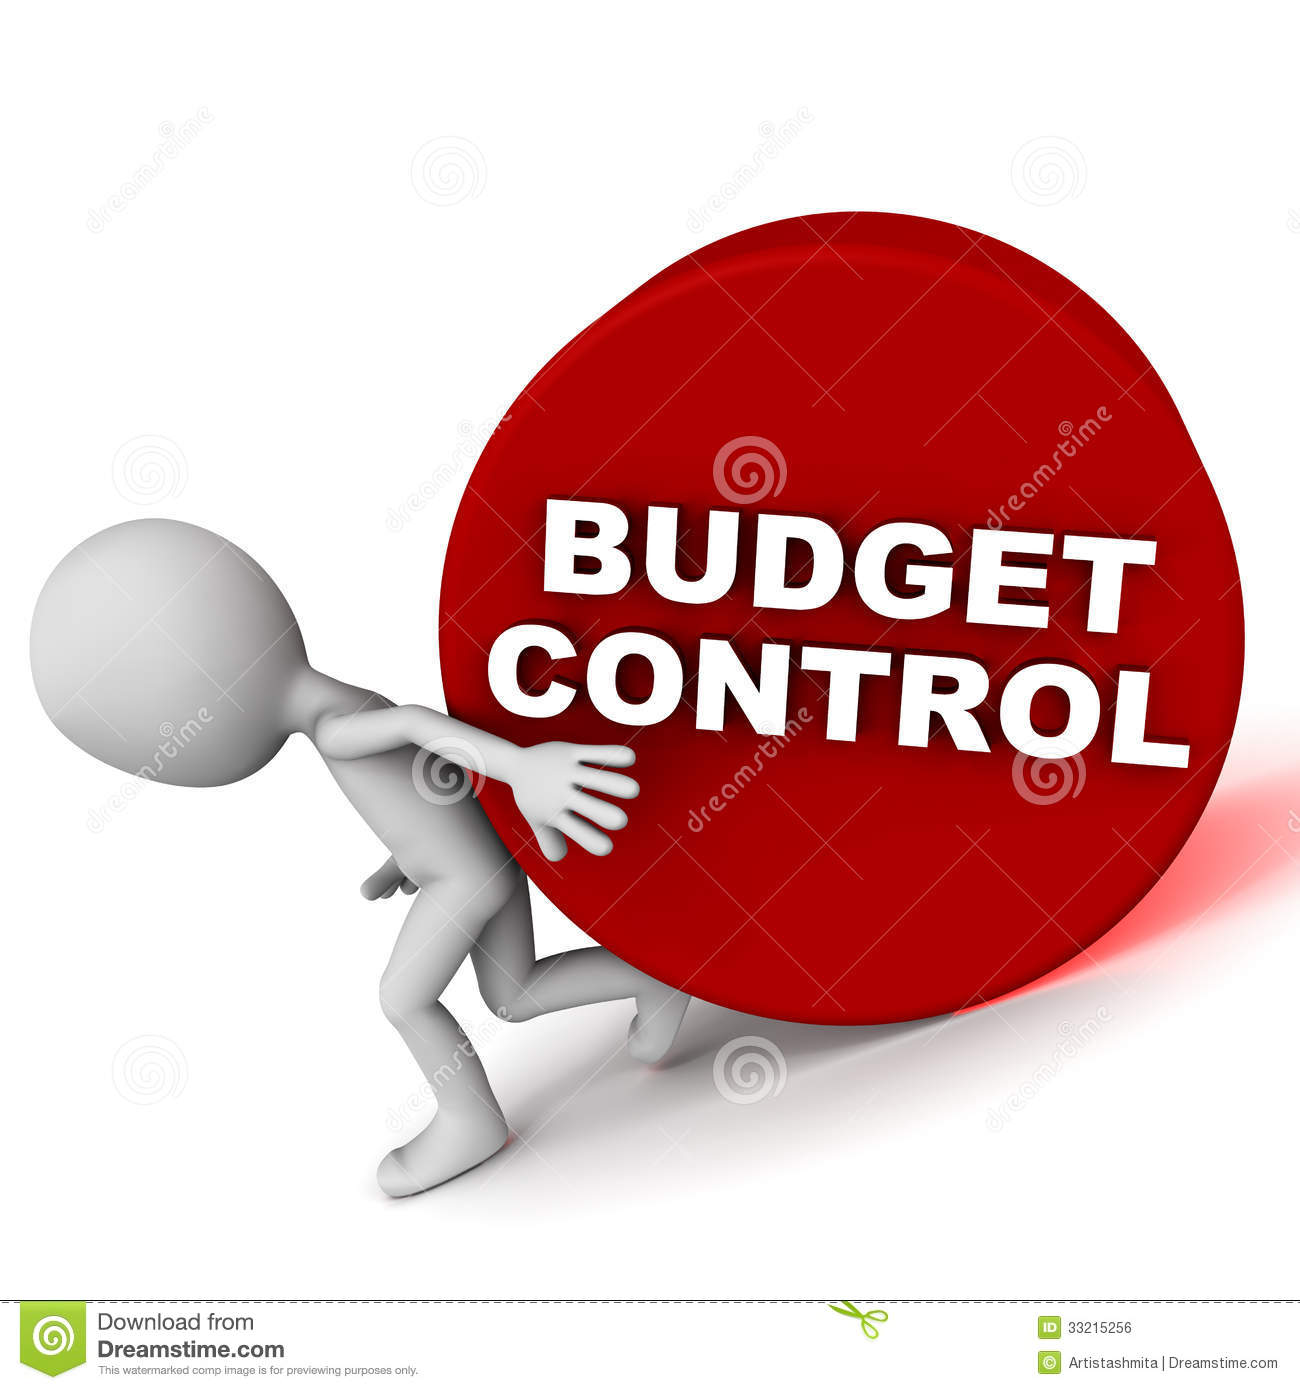 Small Man Trying Hard To Do Budget Control Concept Of Keeping Costs